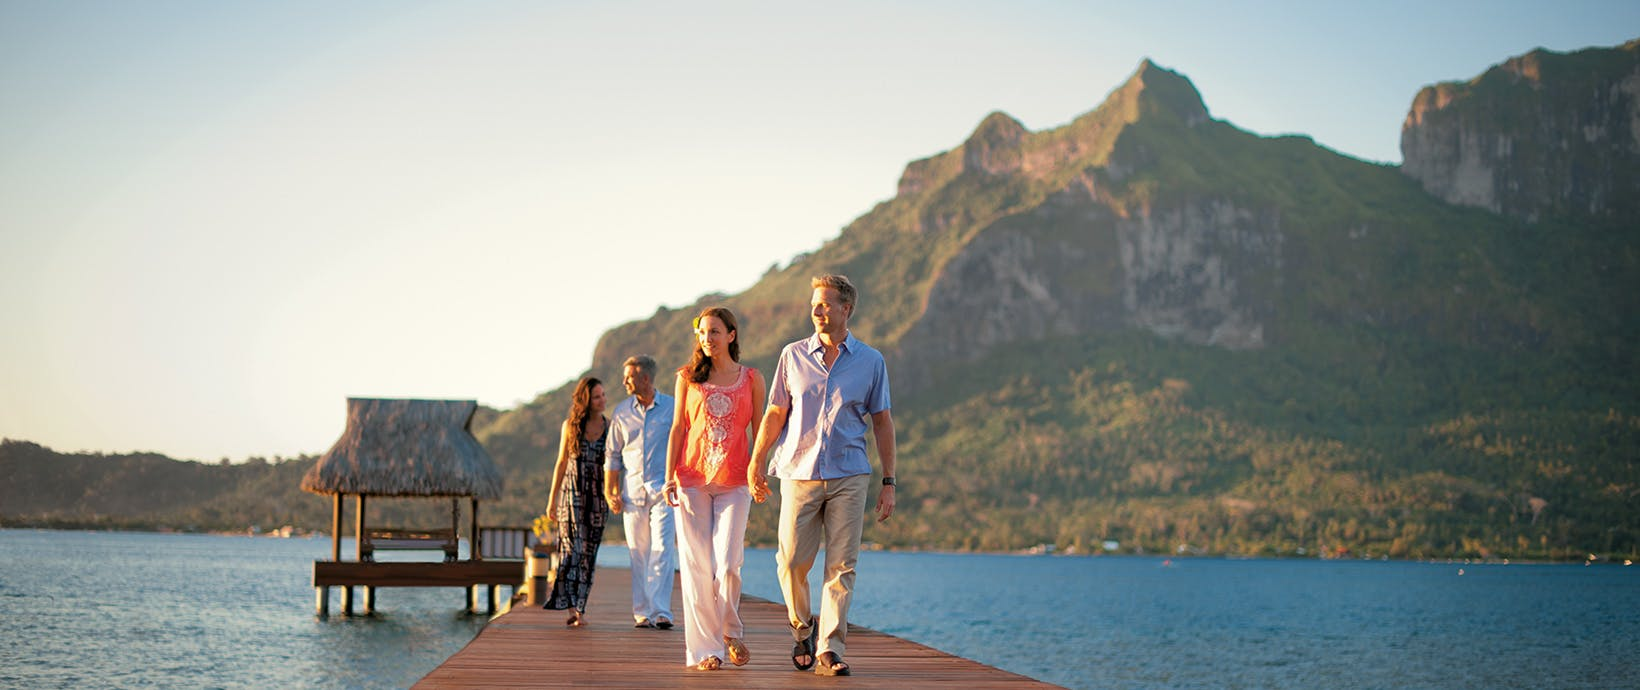 Guests arriving to Bora Bora for their Paul Gauguin cruise.